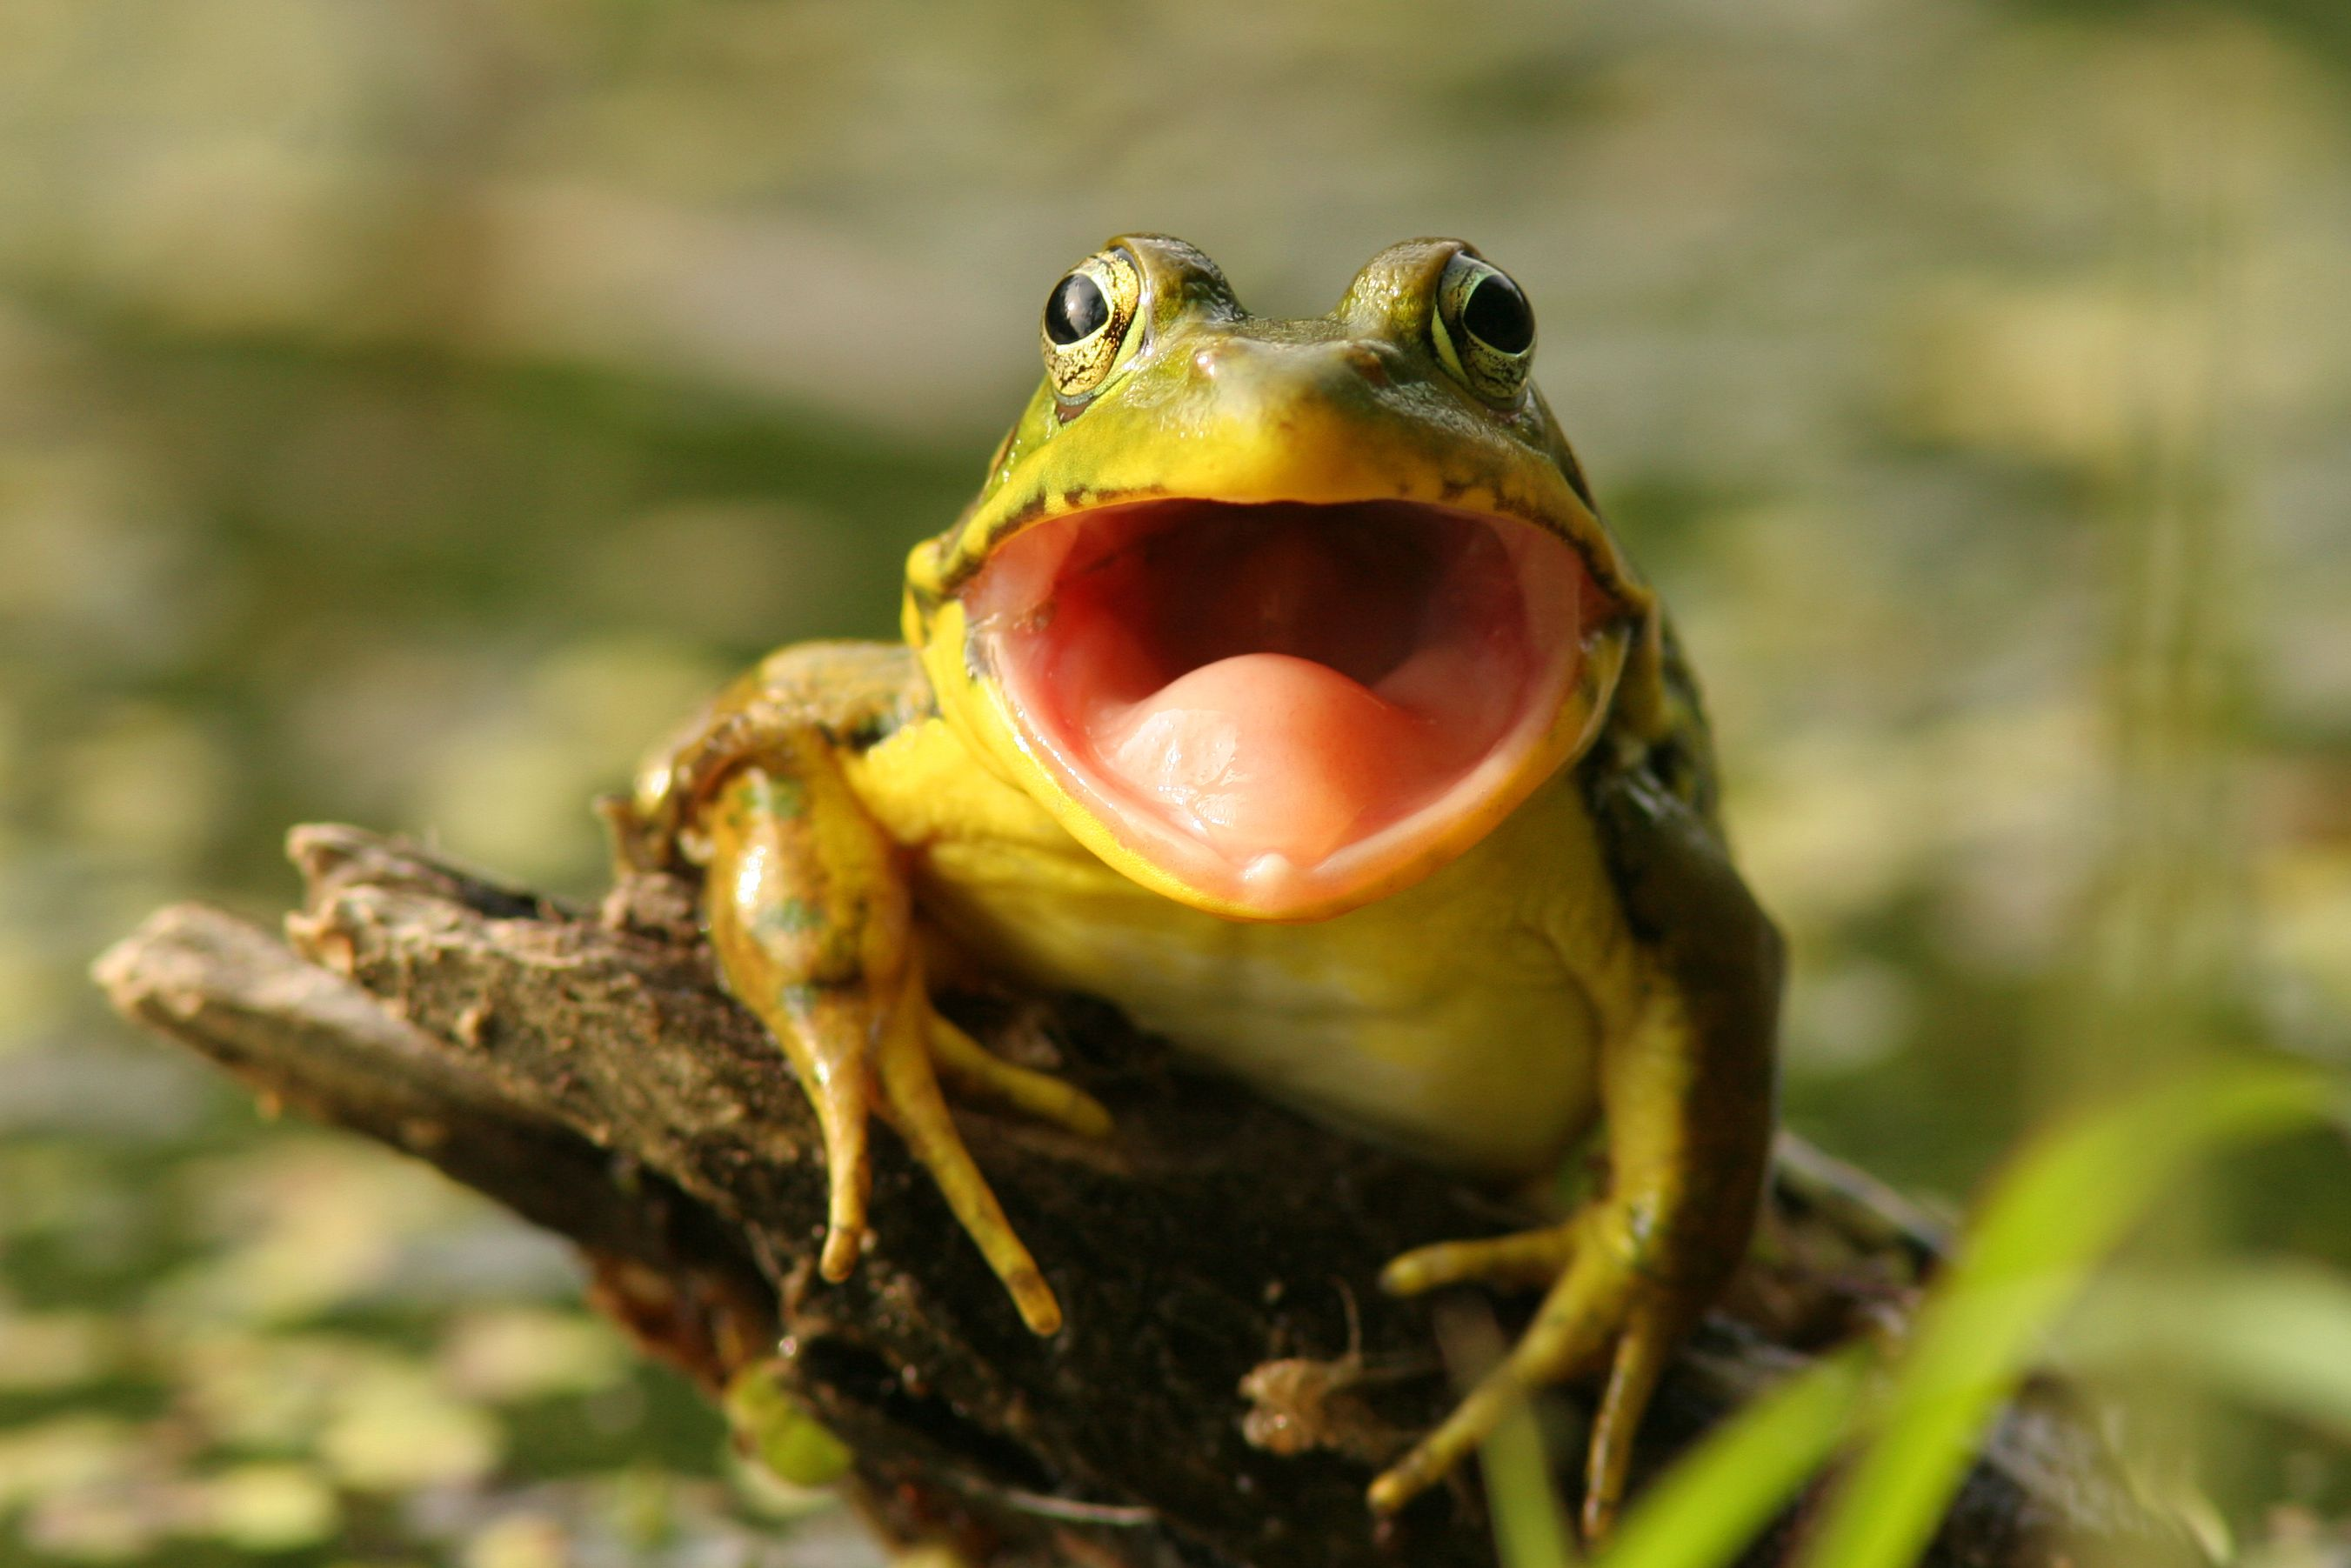 How to Get Rid of Croaking Frogs | Frog, Types of frogs ...